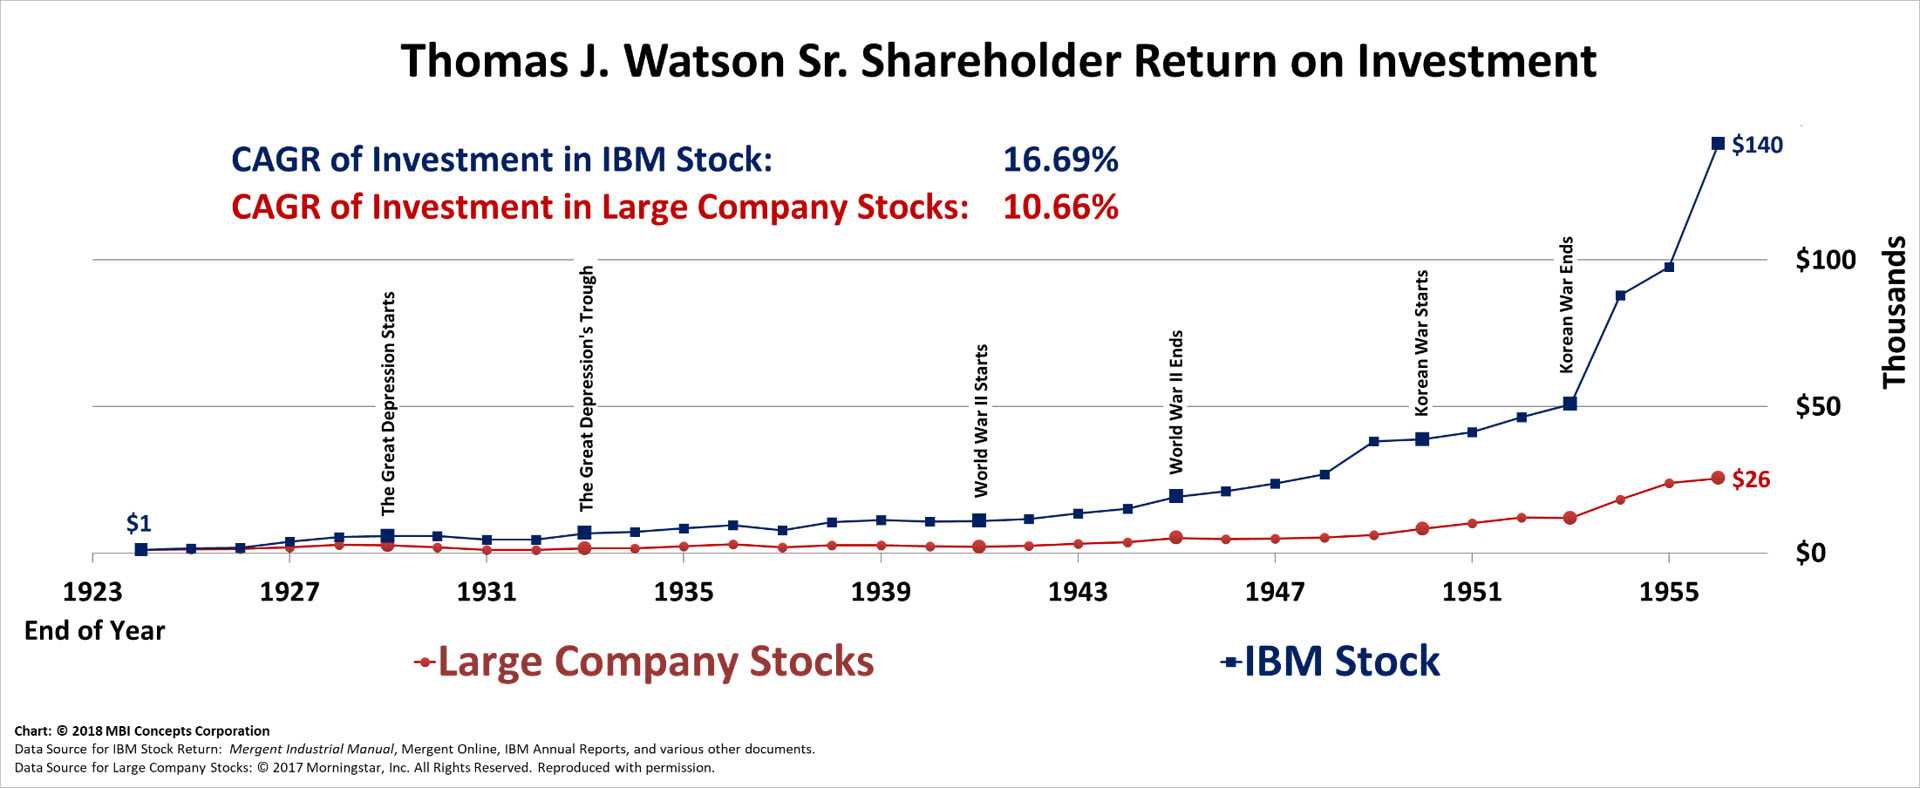 High quality image of line chart of Thomas J. Watson Sr.'s Shareholder Returns from 1923 through 1956 compared with a large company stocks index.